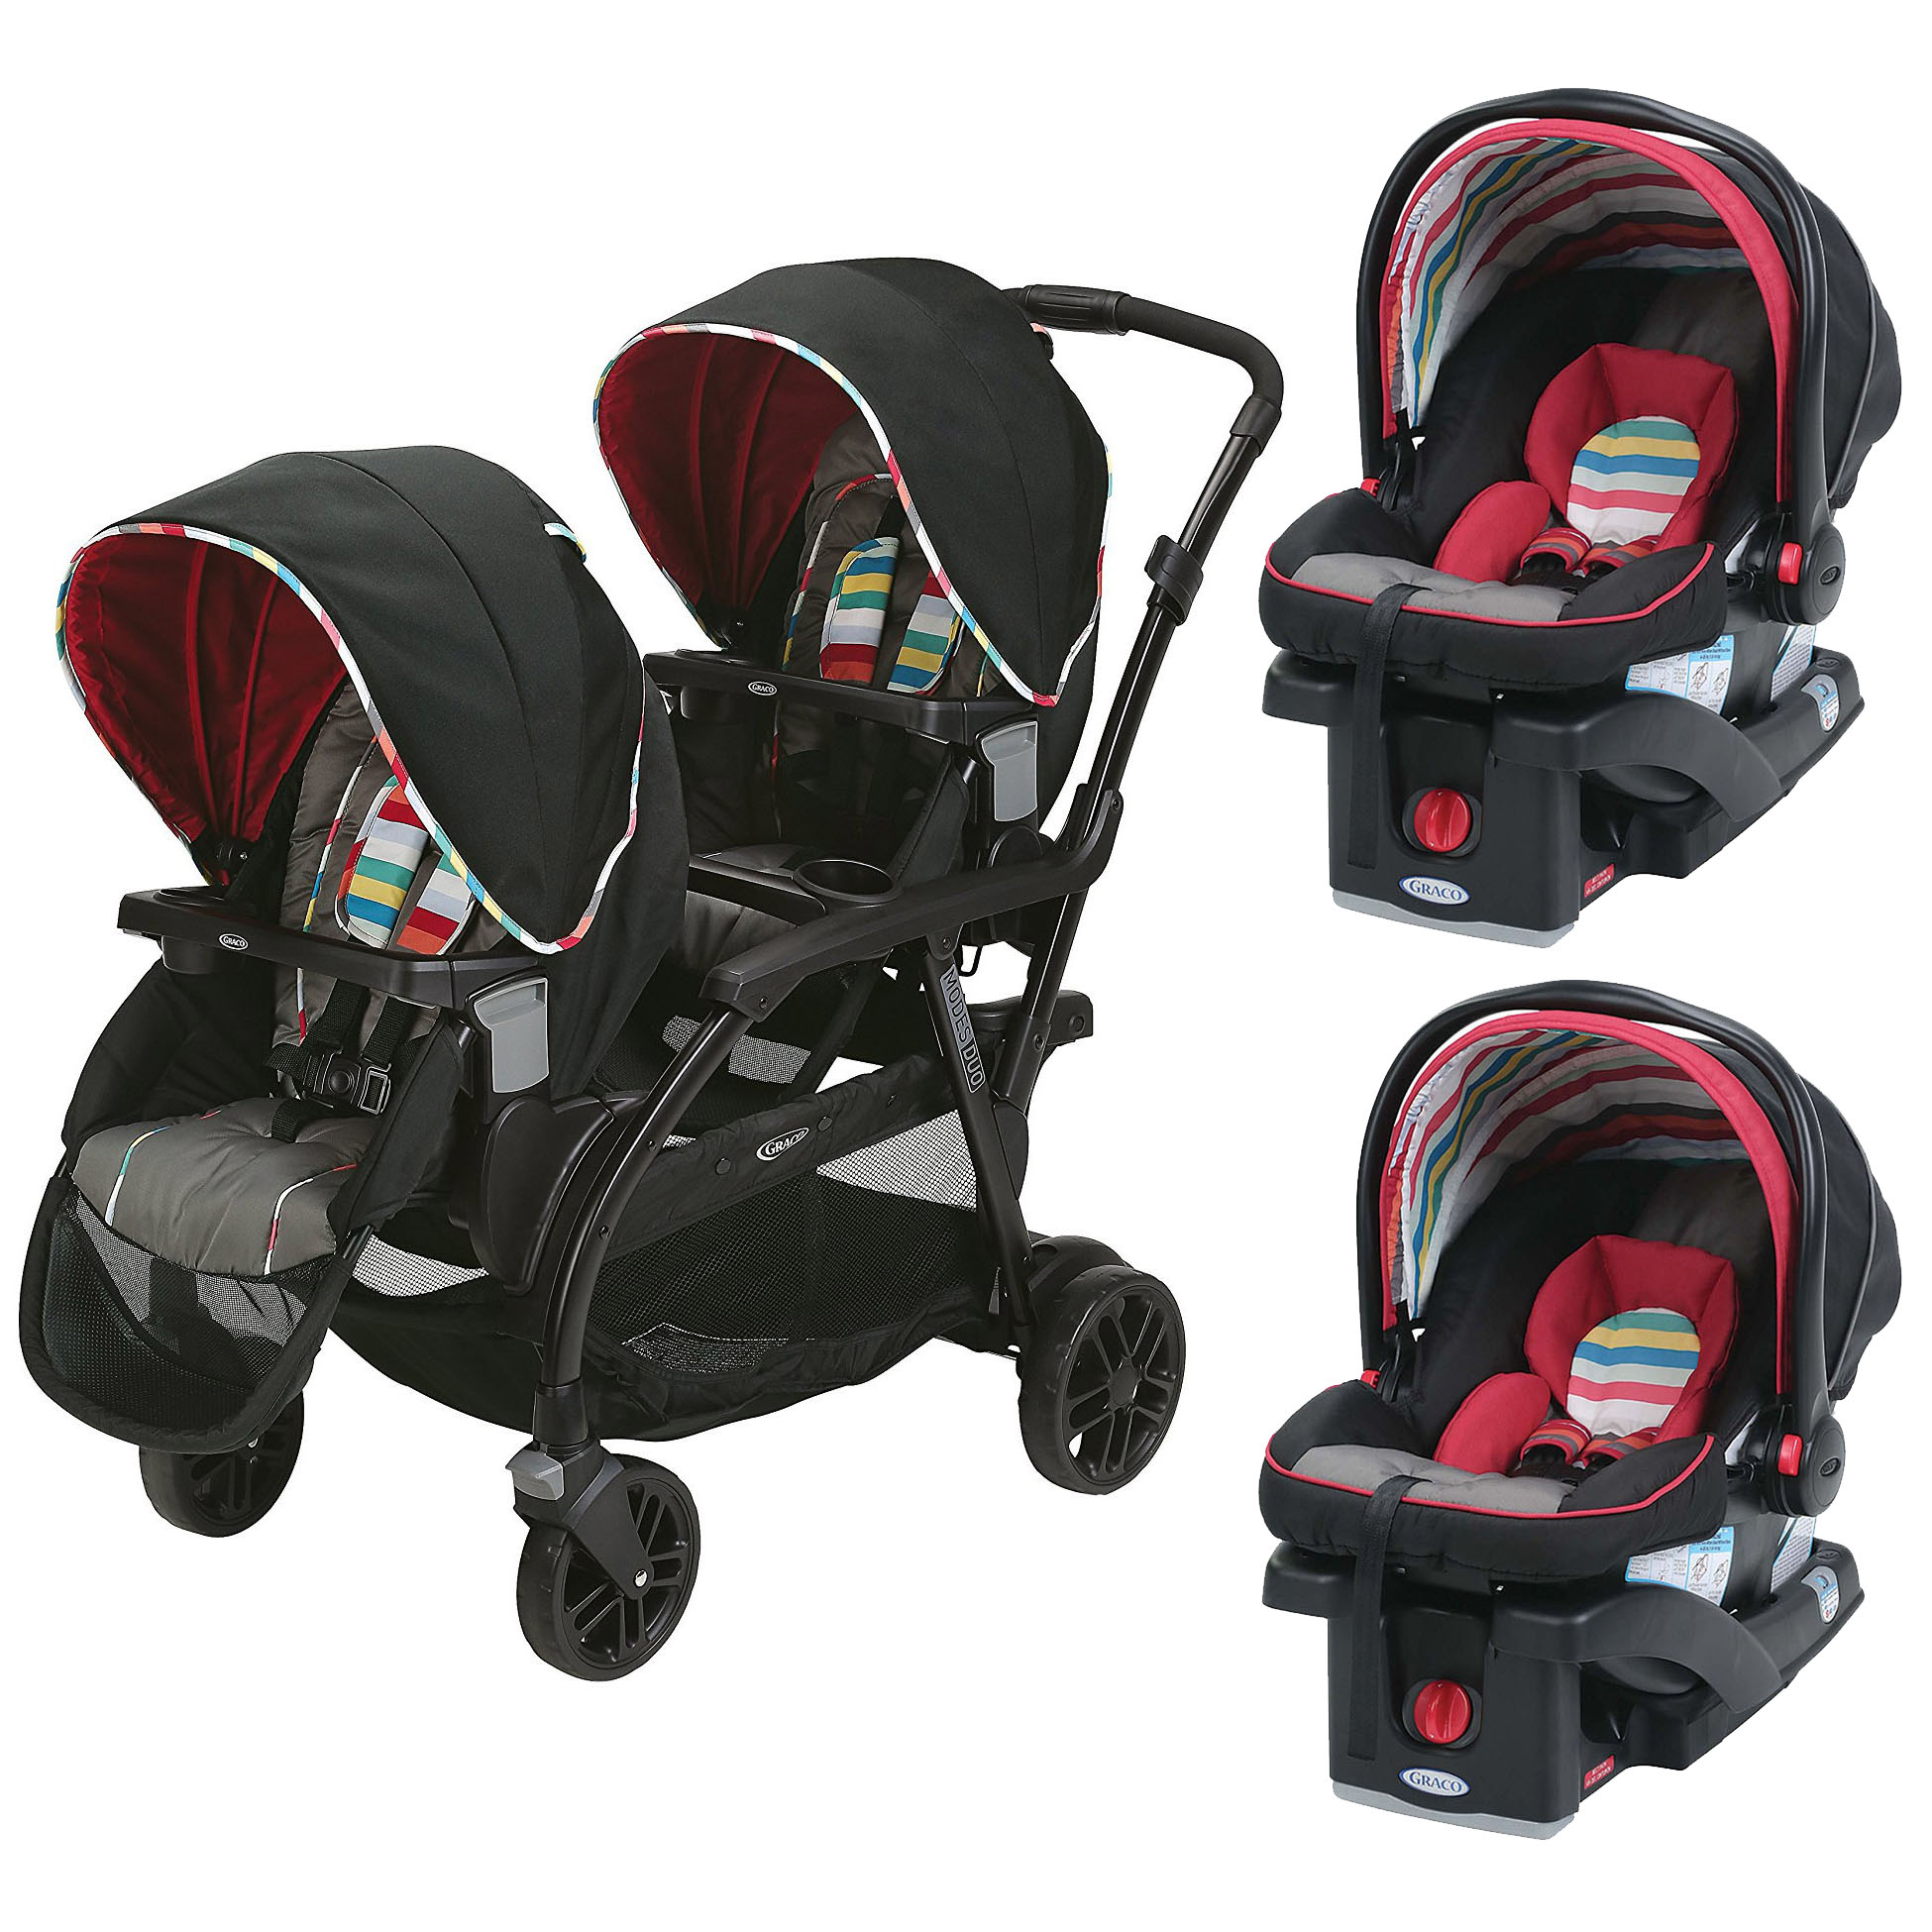 Graco Travel System Modes Duo Stroller & 2 SnugRide Click Connect Car Seats by Graco